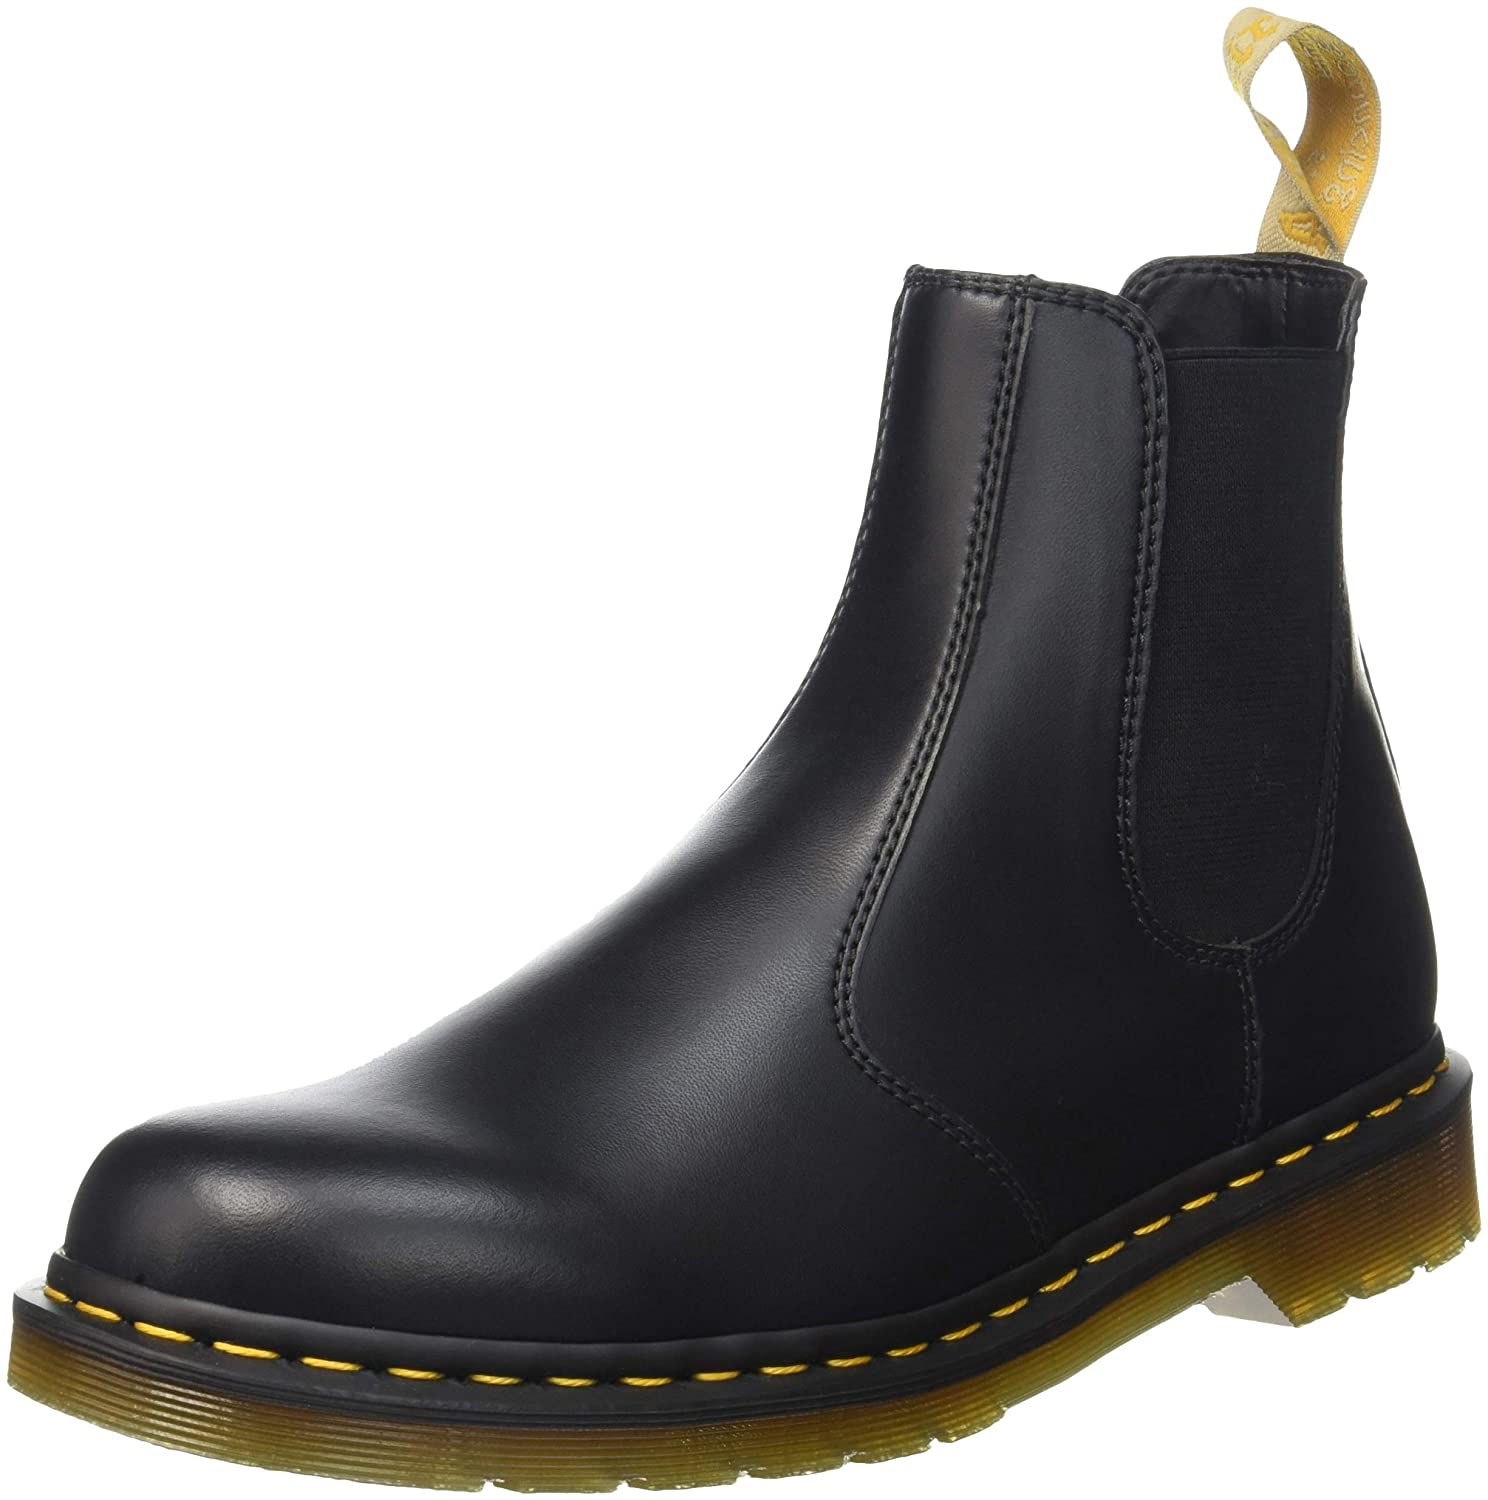 up-to-date styling best price where can i buy Dr. Martens Vegan 2976 Chelsea Boot